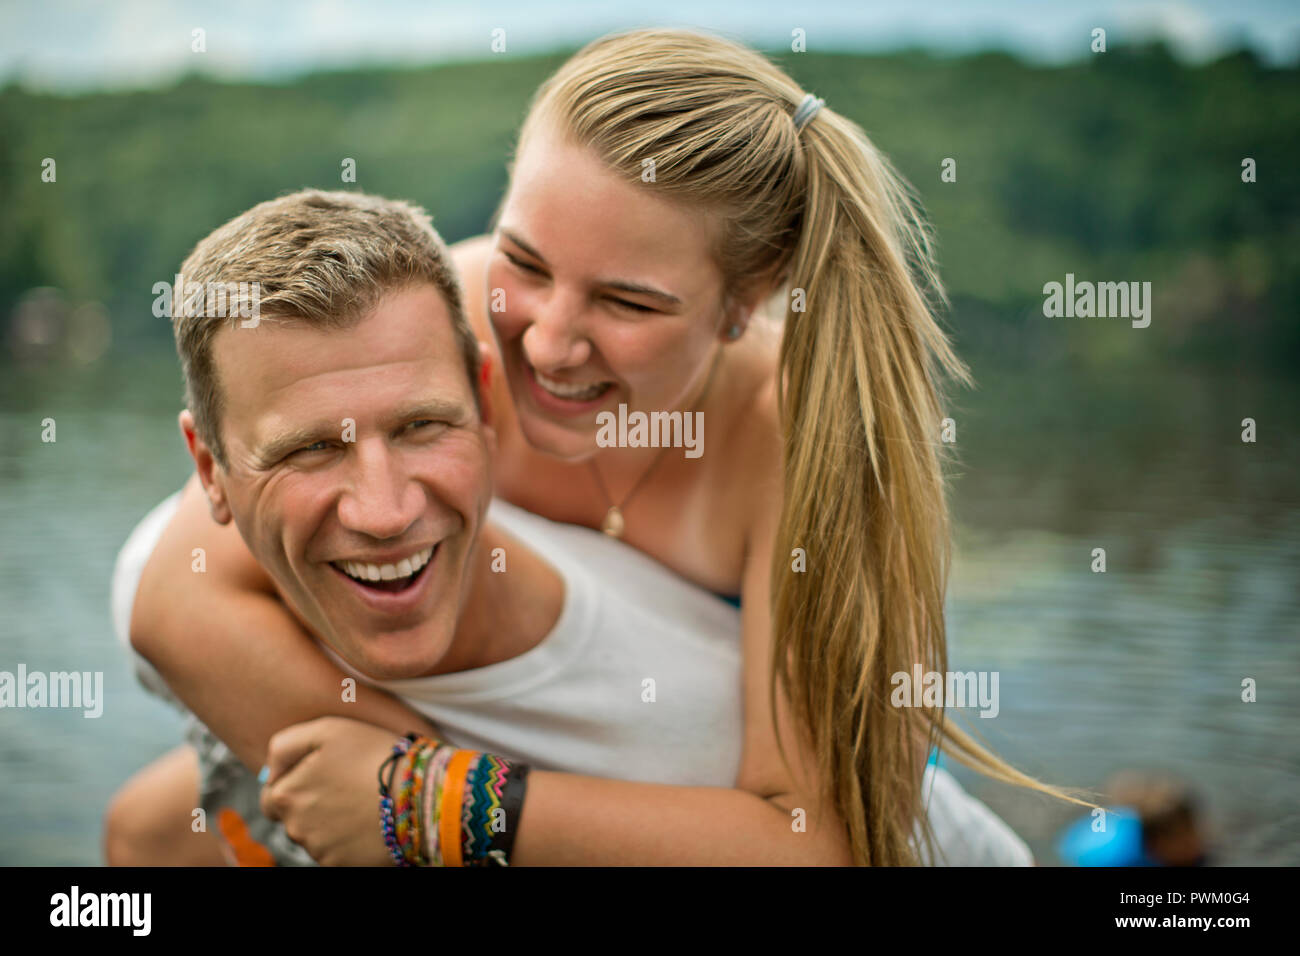 Smiling middle aged man giving his daughter a piggyback ride. Stock Photo